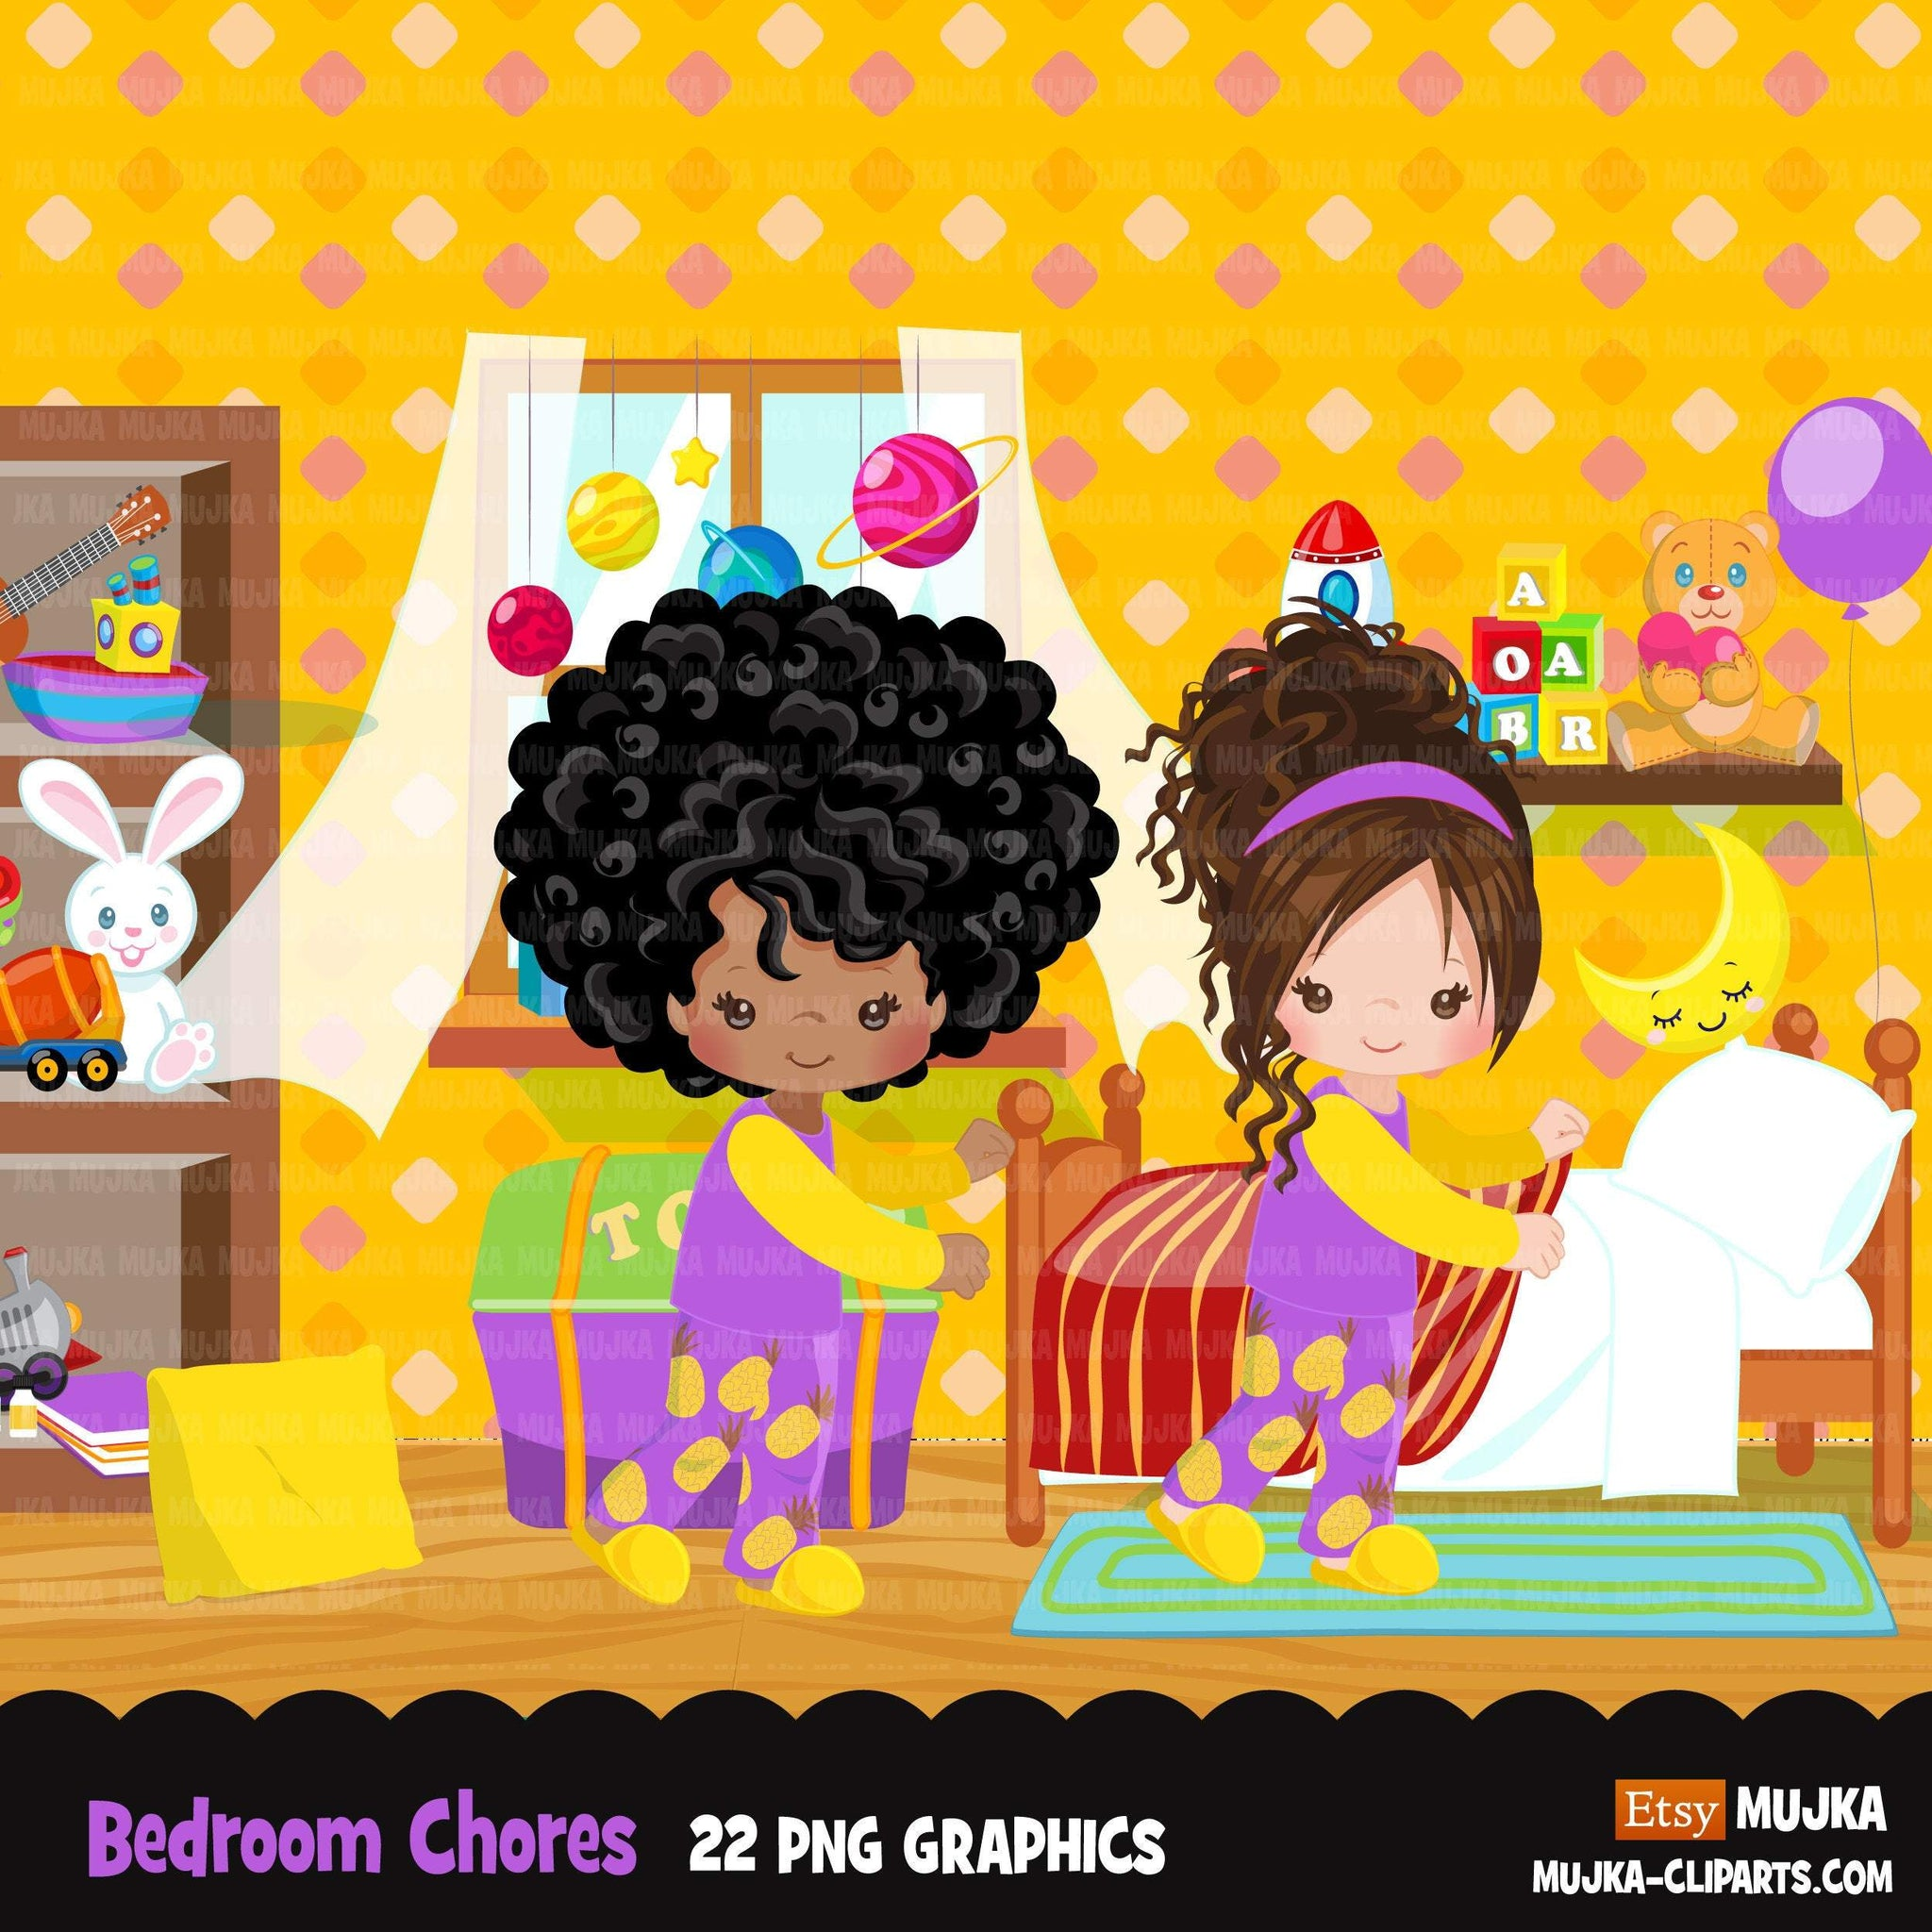 Chores Clipart, bedroom chores, making bed, children's room sublimation graphics, black girls PNG clip art